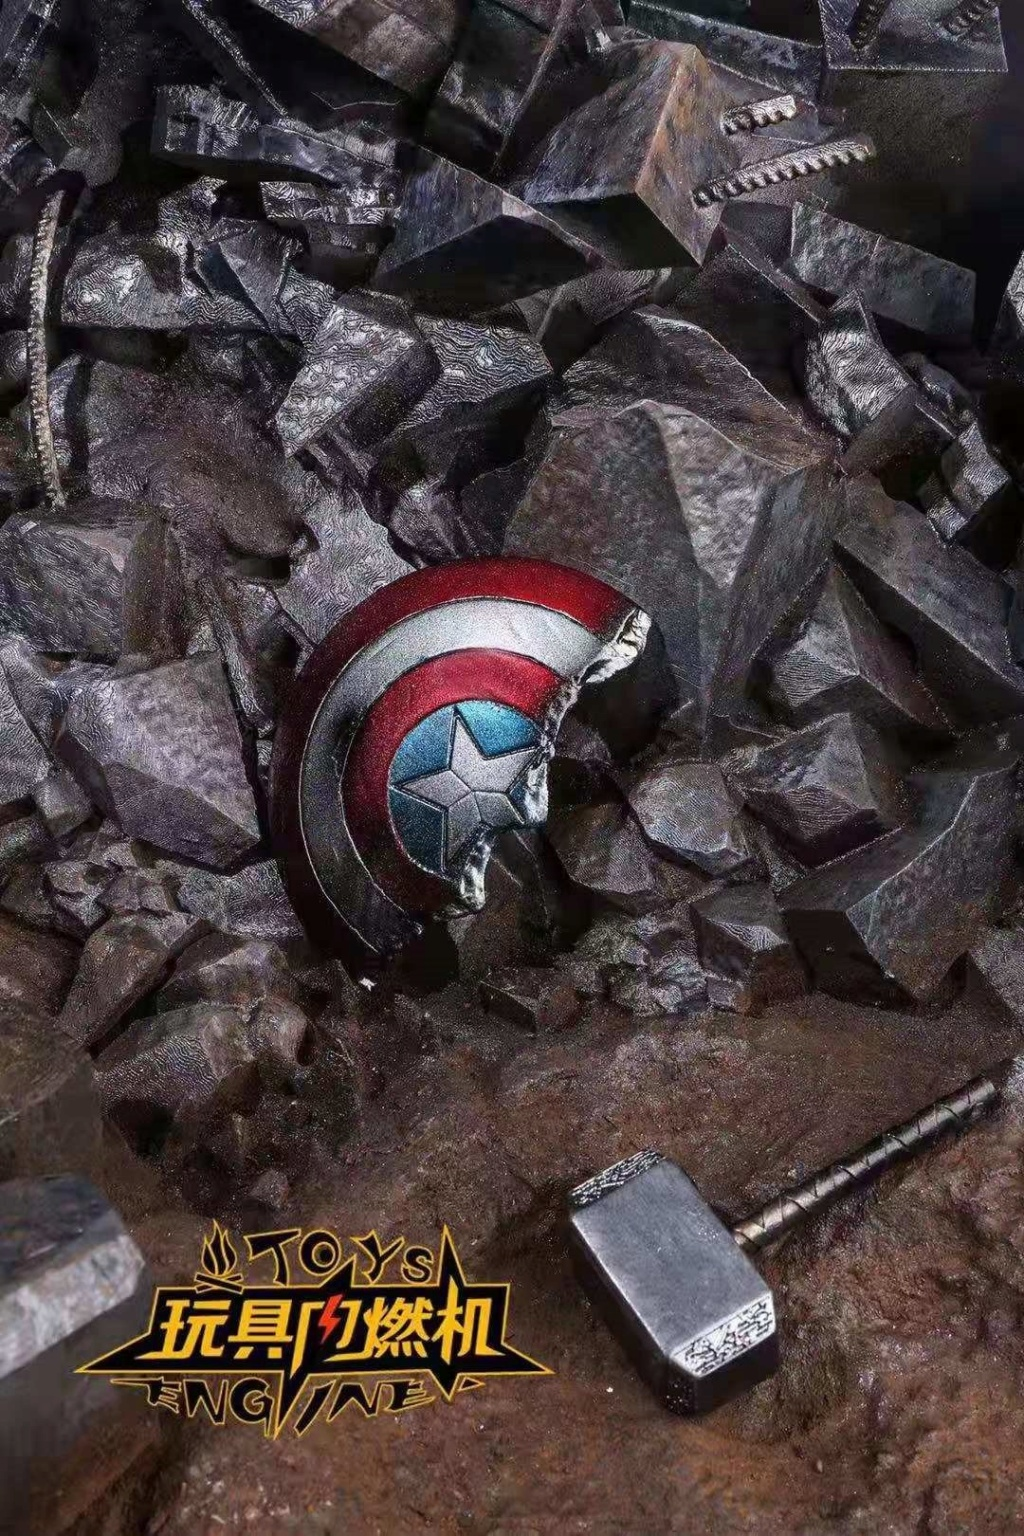 diorama - NEW PRODUCT: Toys Engine : Avengers Endgame Dynamic Stand Final Battle Scene 4288